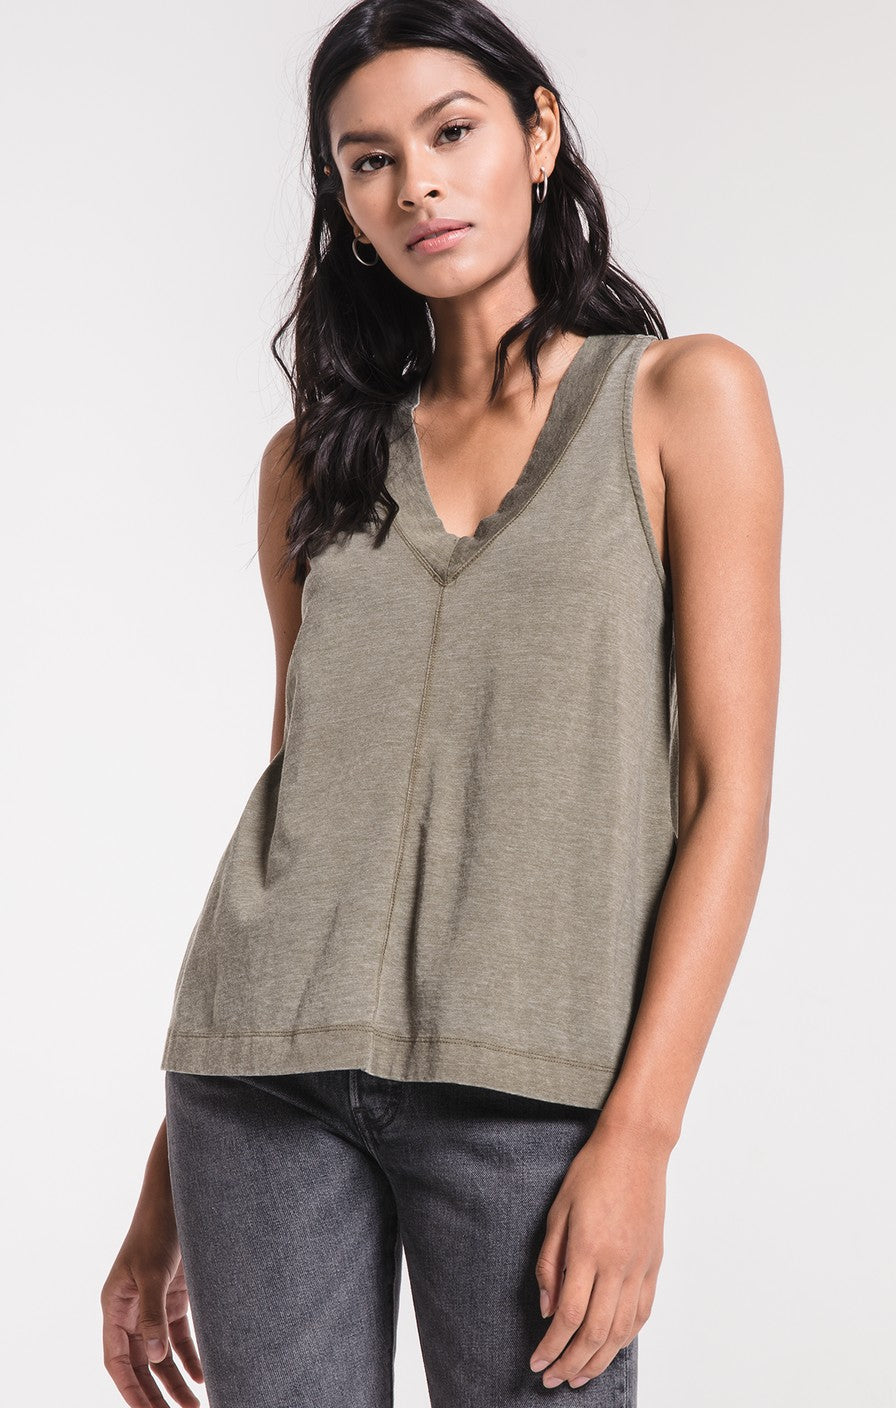 The City Racerback Tank